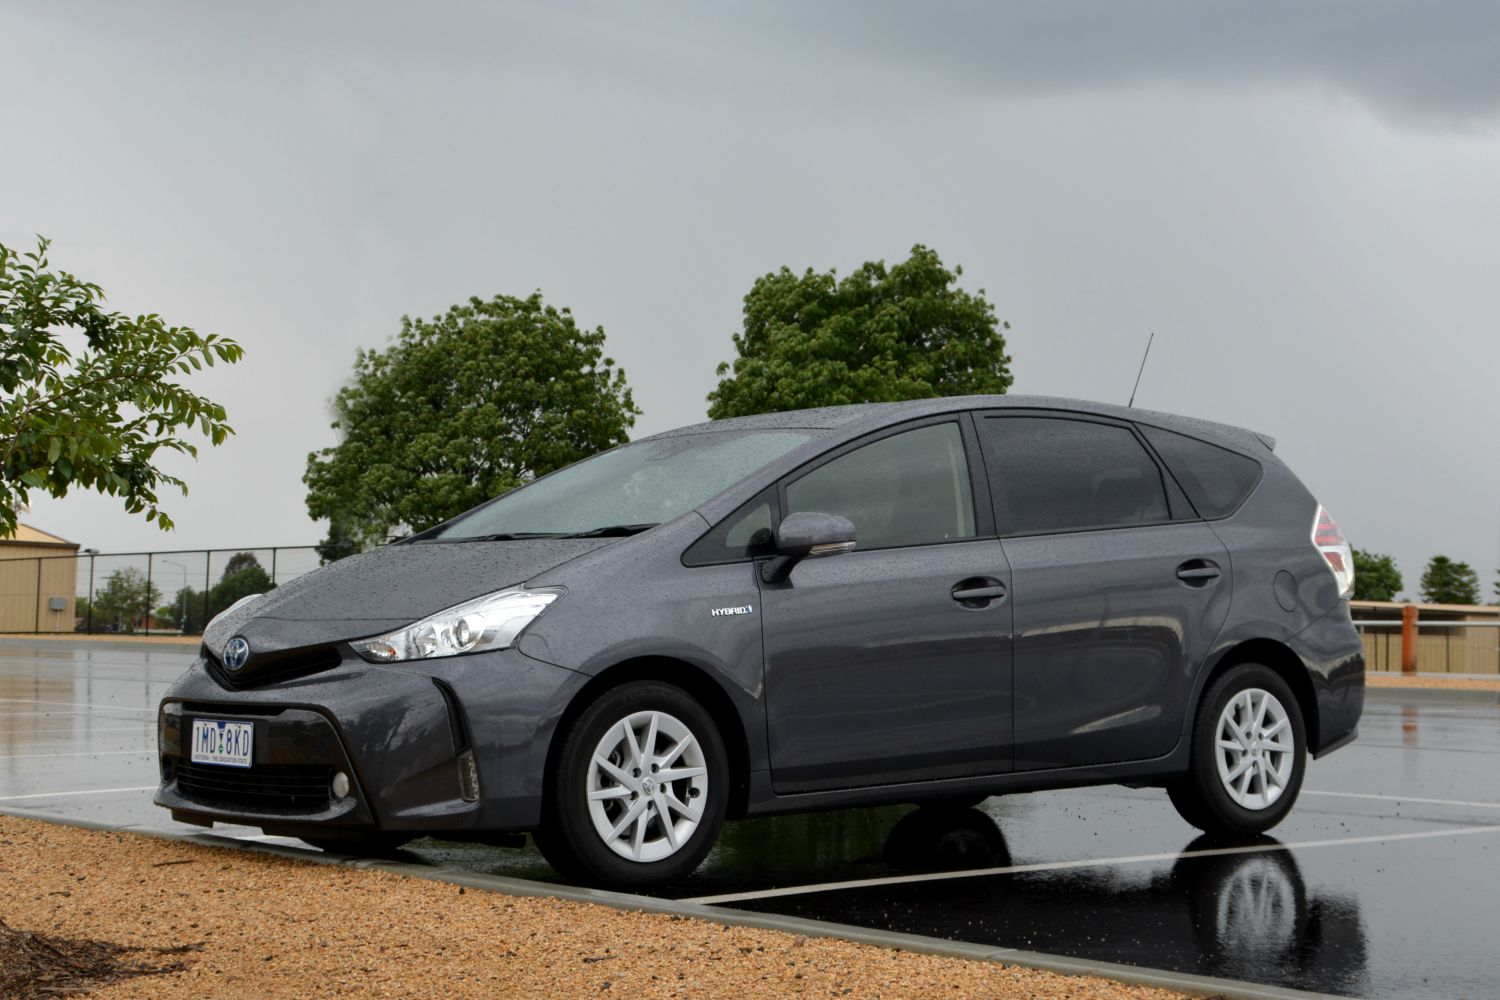 Toyota Prius v long-term review: Introduction